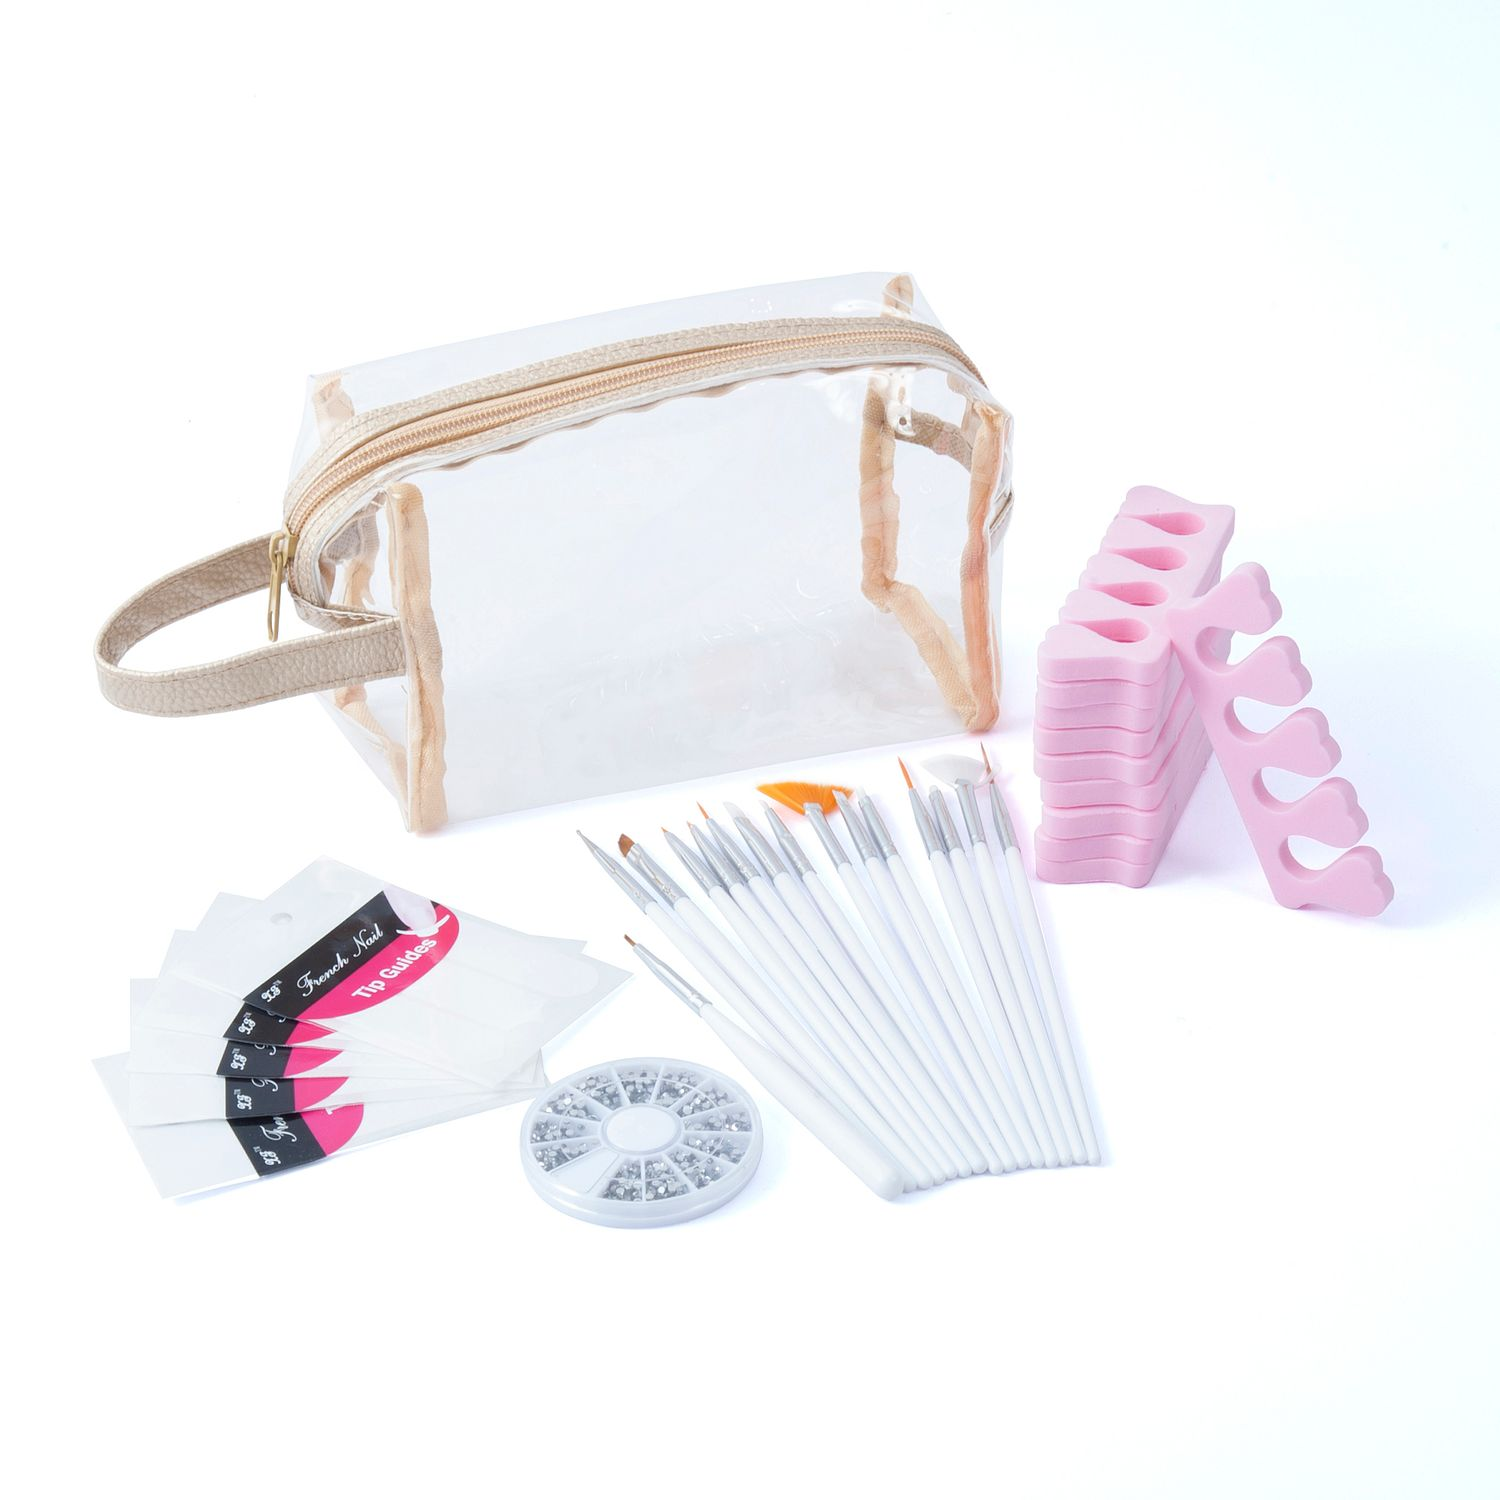 Zodaca 5-piece Nail Art Gift Set of Brushes, 3D Bling Crystal Rhinestones, Stickers, Separators & Clear Cosmetic Bag (5-in-1 Accessory Bundle)